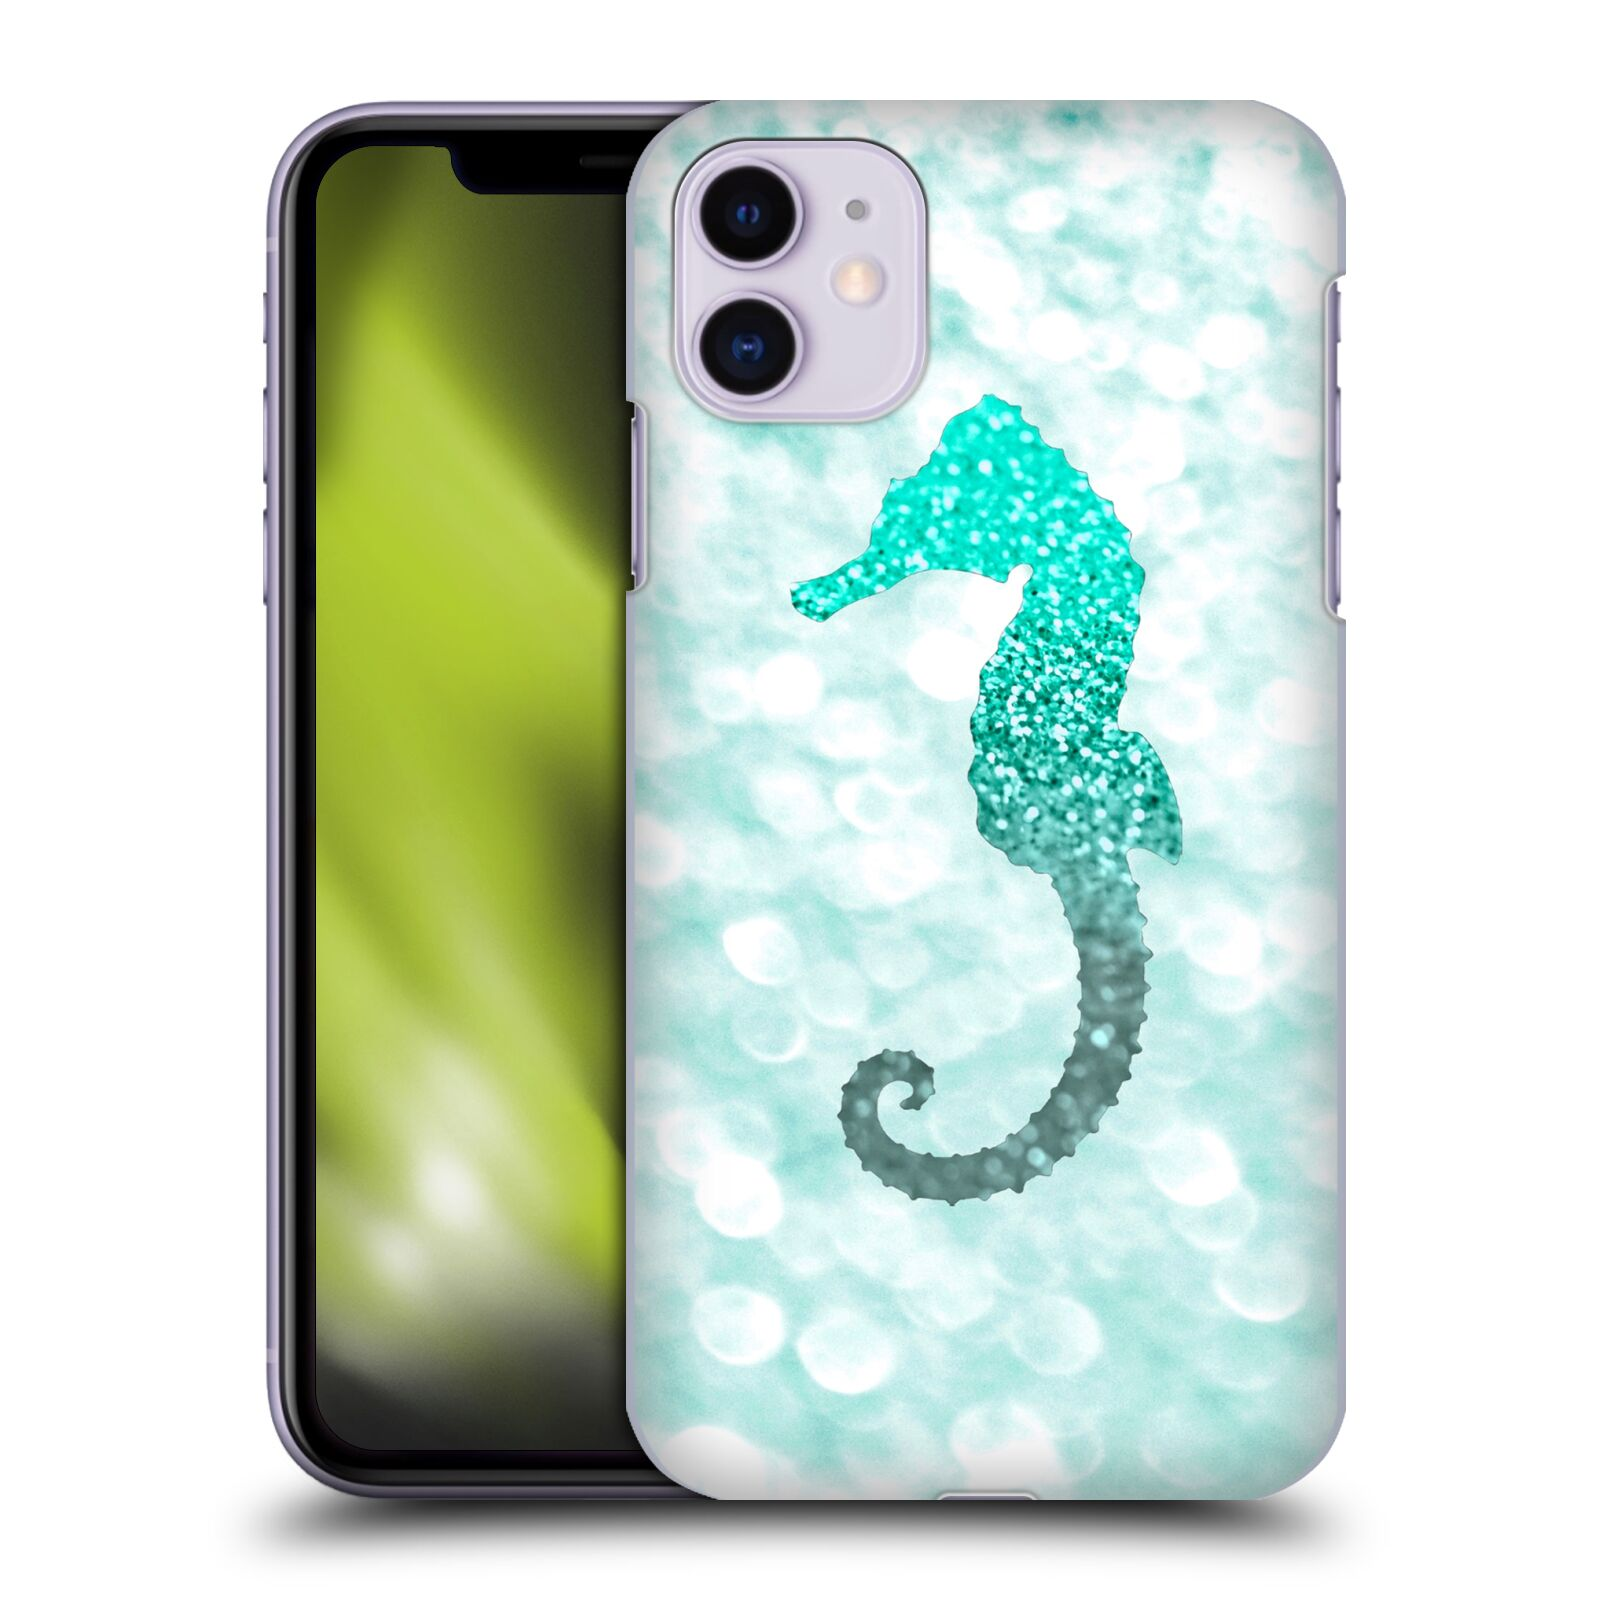 Official Monika Strigel Champagne Glitters 2 Seahorse Mint Case for Apple iPhone 11